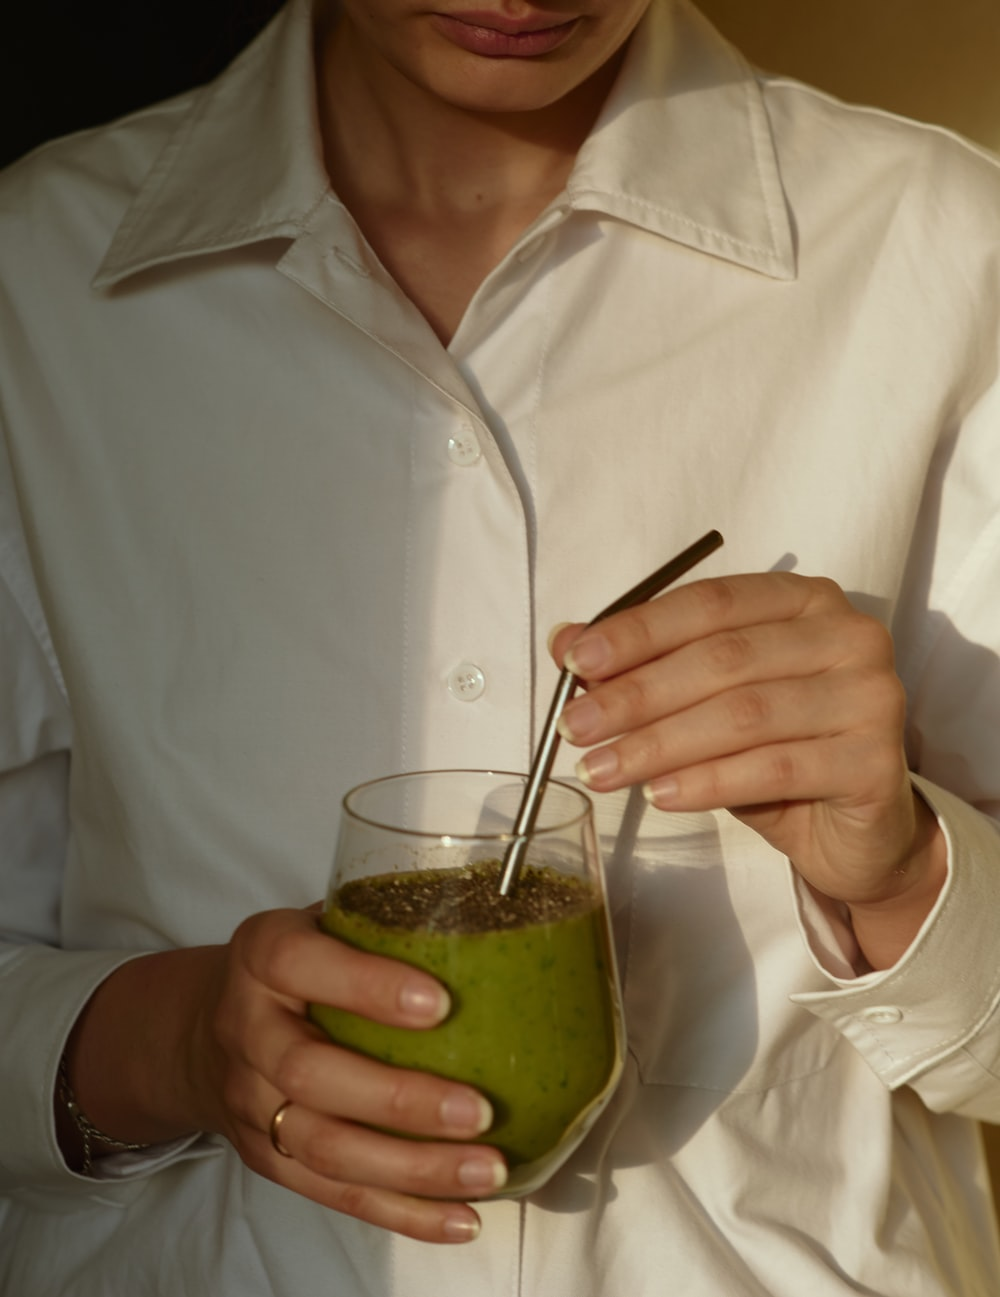 person in white button up shirt holding clear drinking glass with green liquid